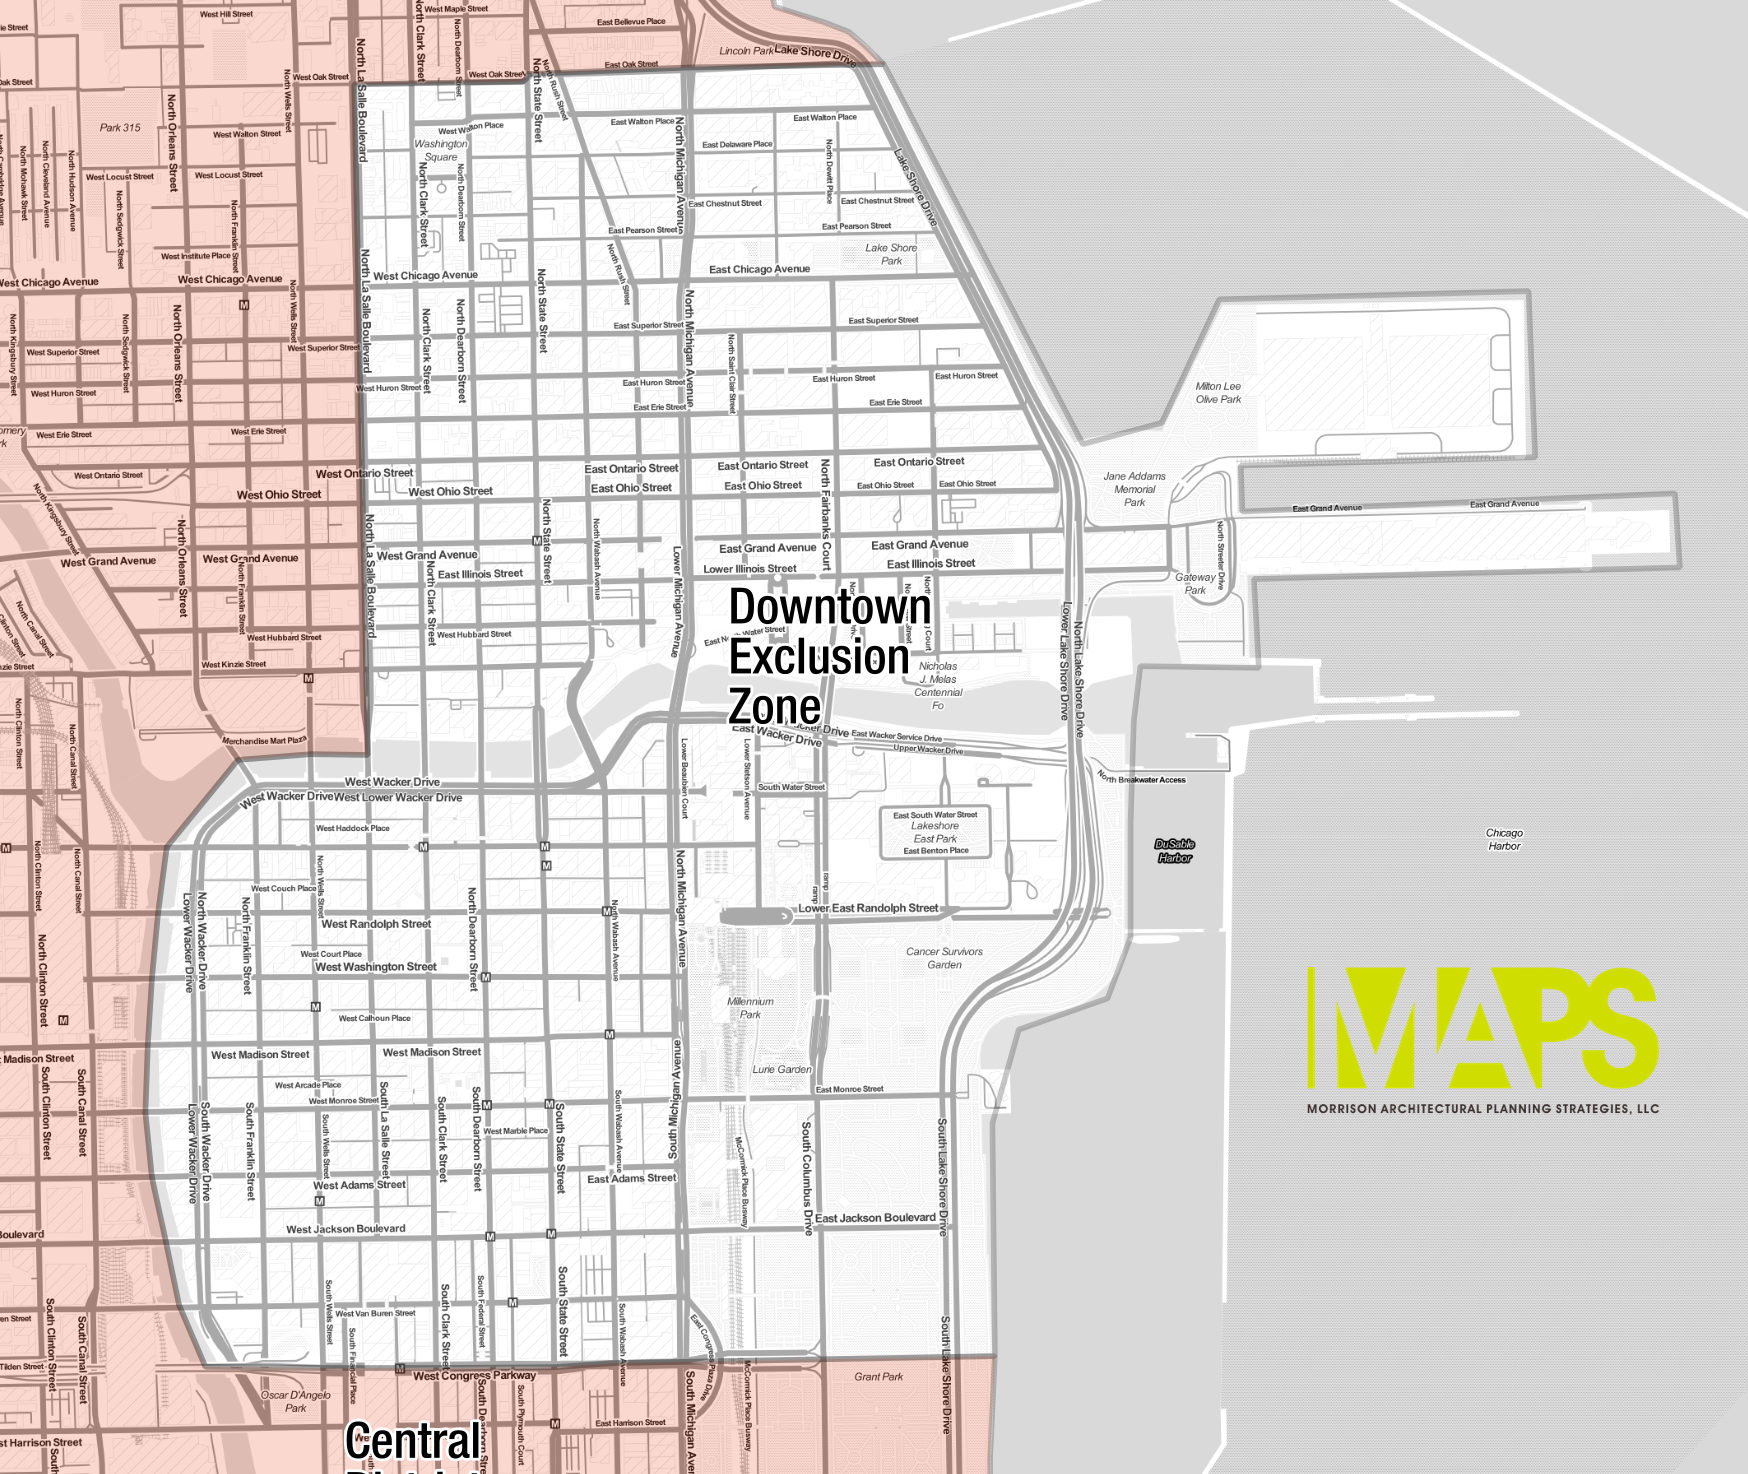 Map of the proposed downtown exclusion zone